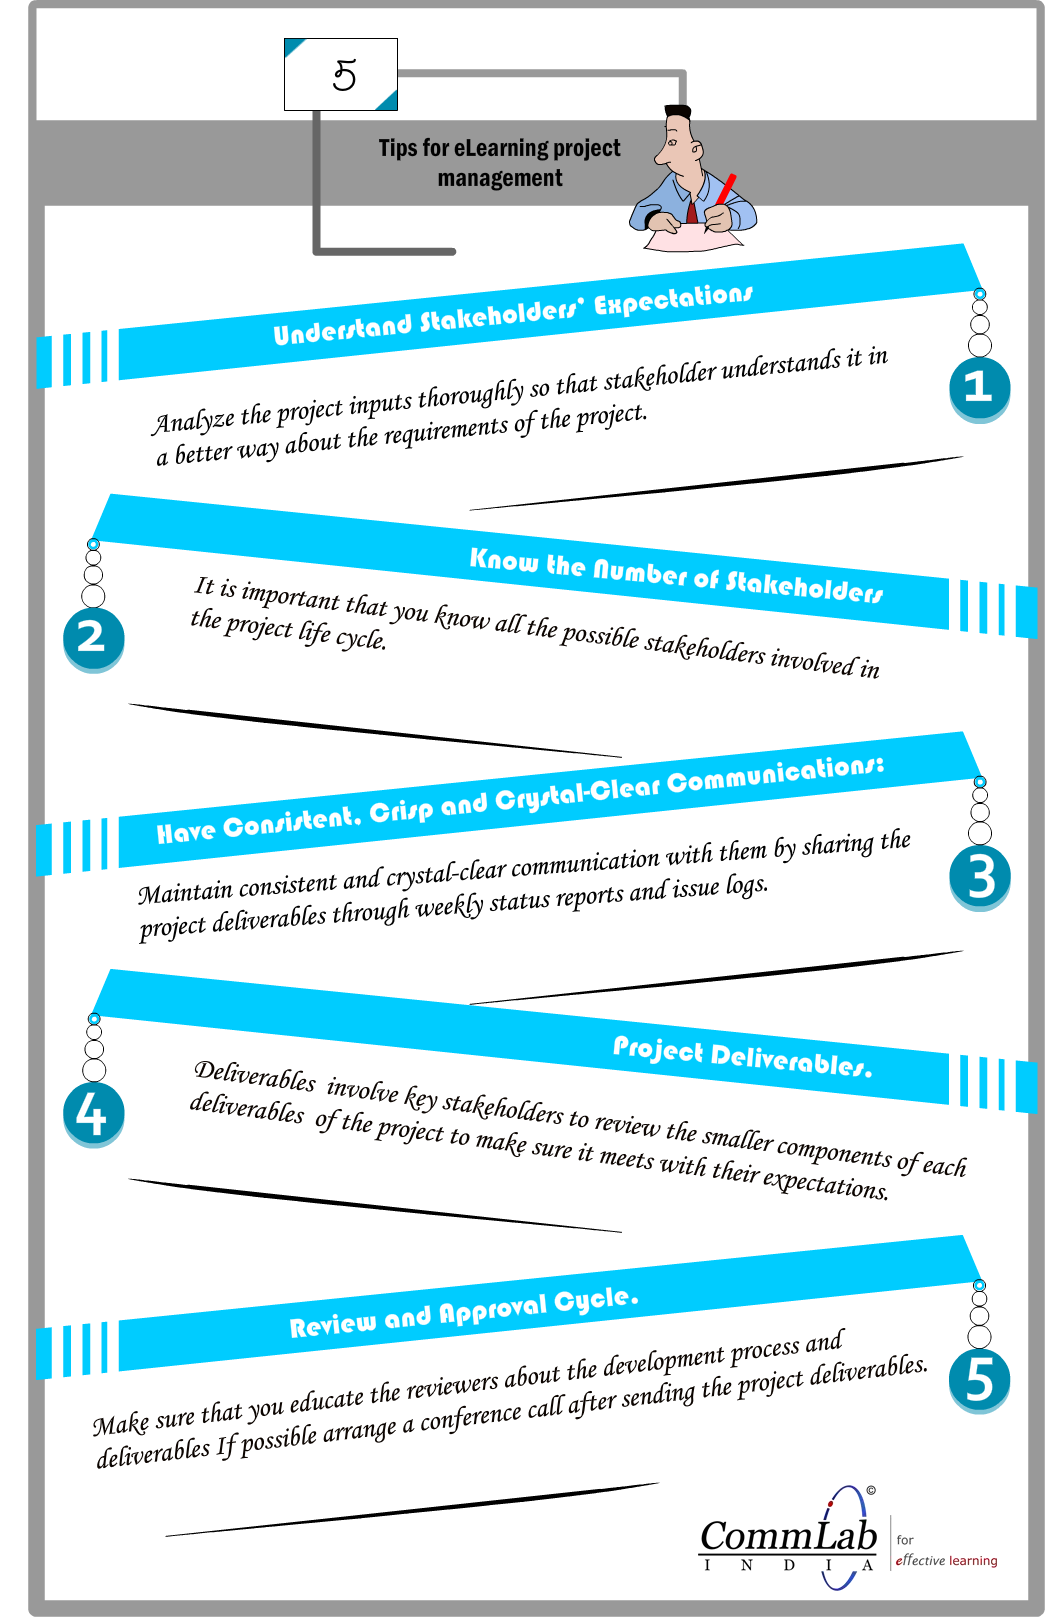 5 Tips for E-learning Project Management – An Infographic